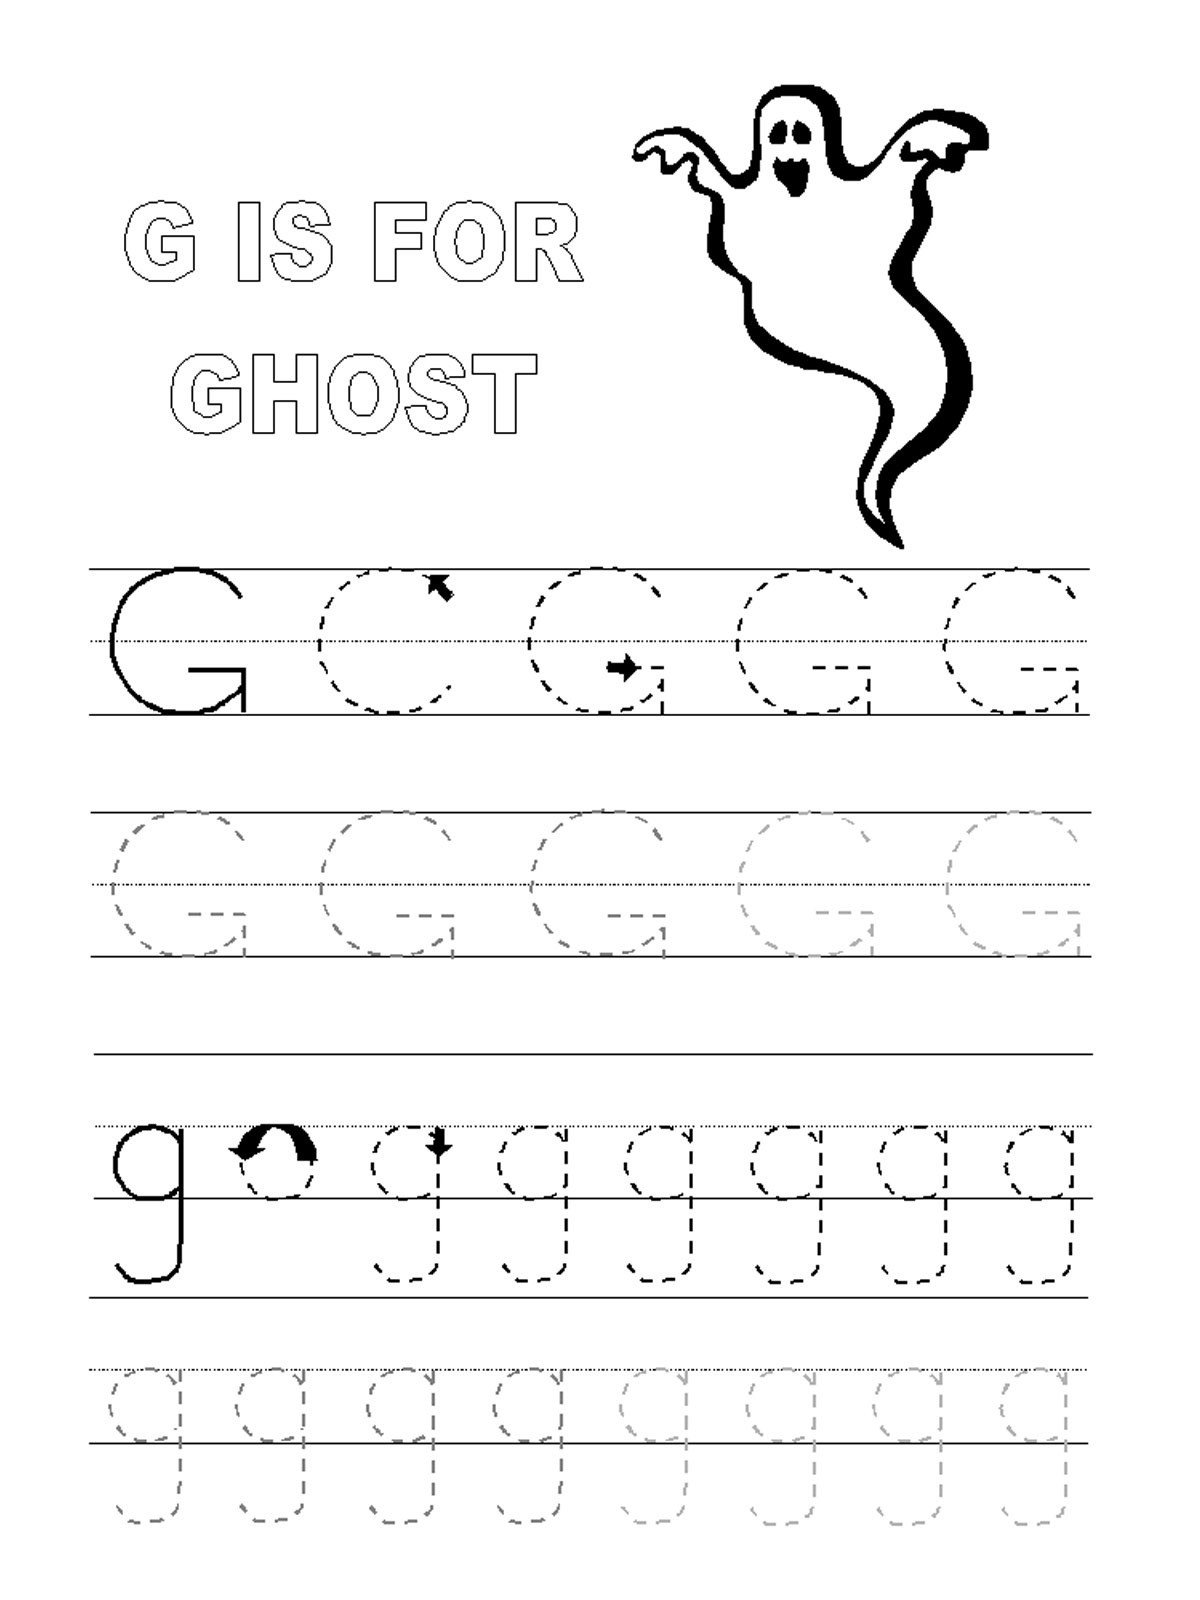 Preschool Letter G Worksheets Trace Letter G Worksheets